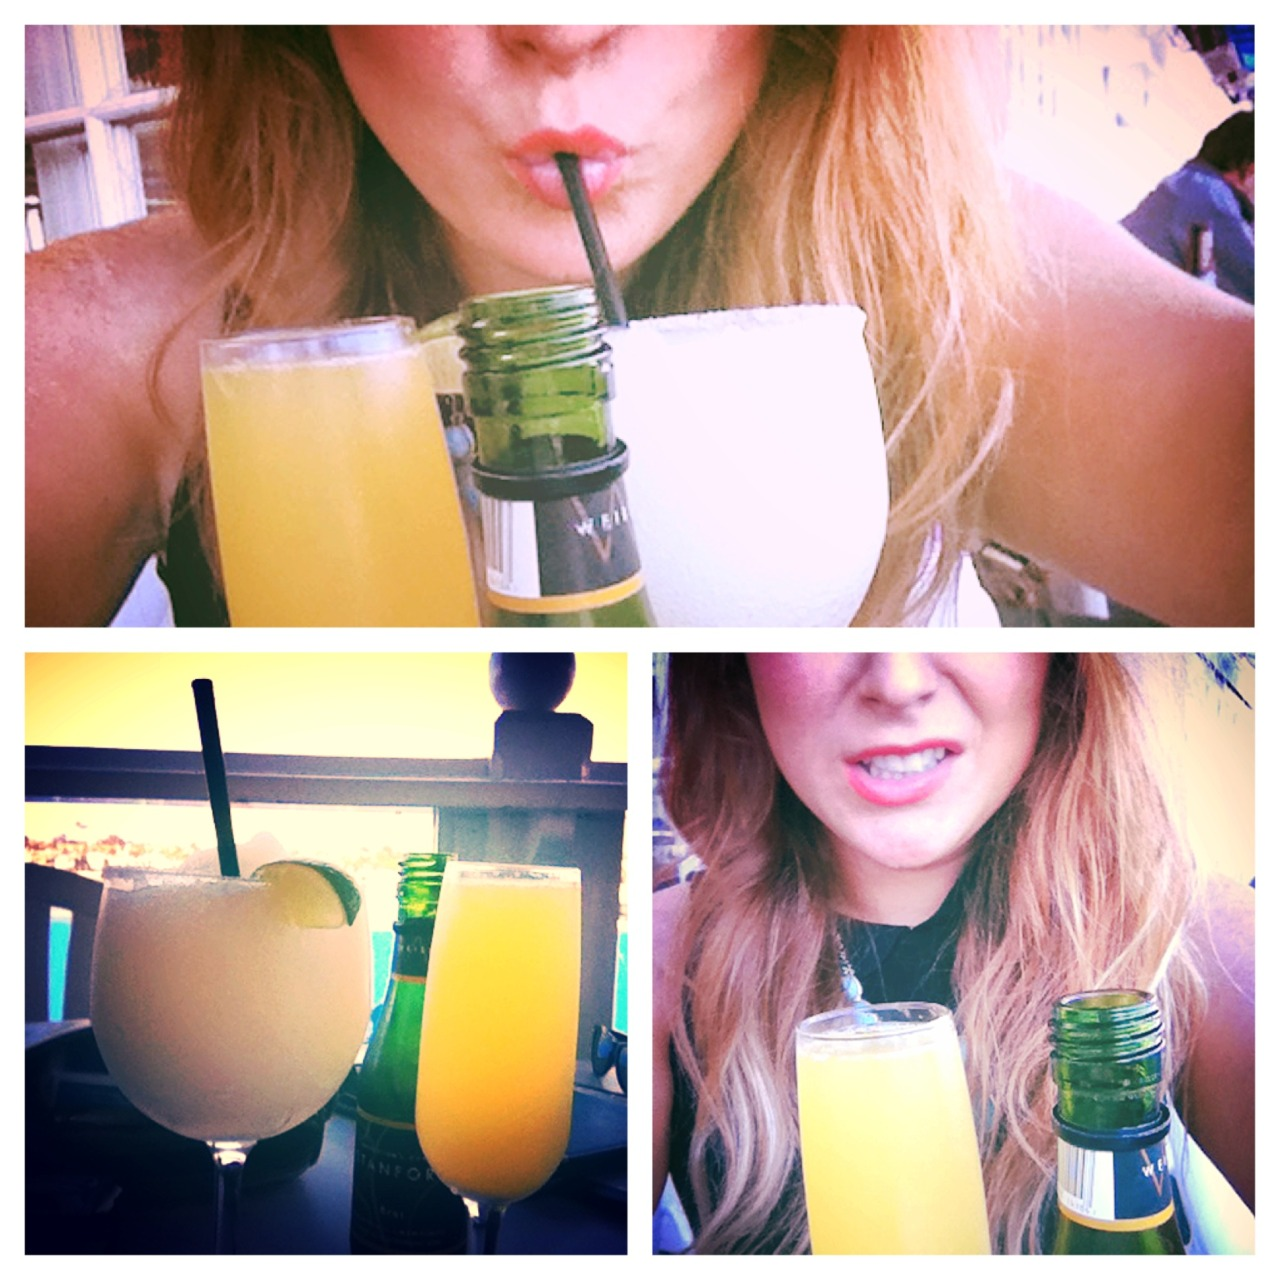 California is a dream world. Filled with mimosas and $3.99 happy hour margarita specials. Newport livin'.